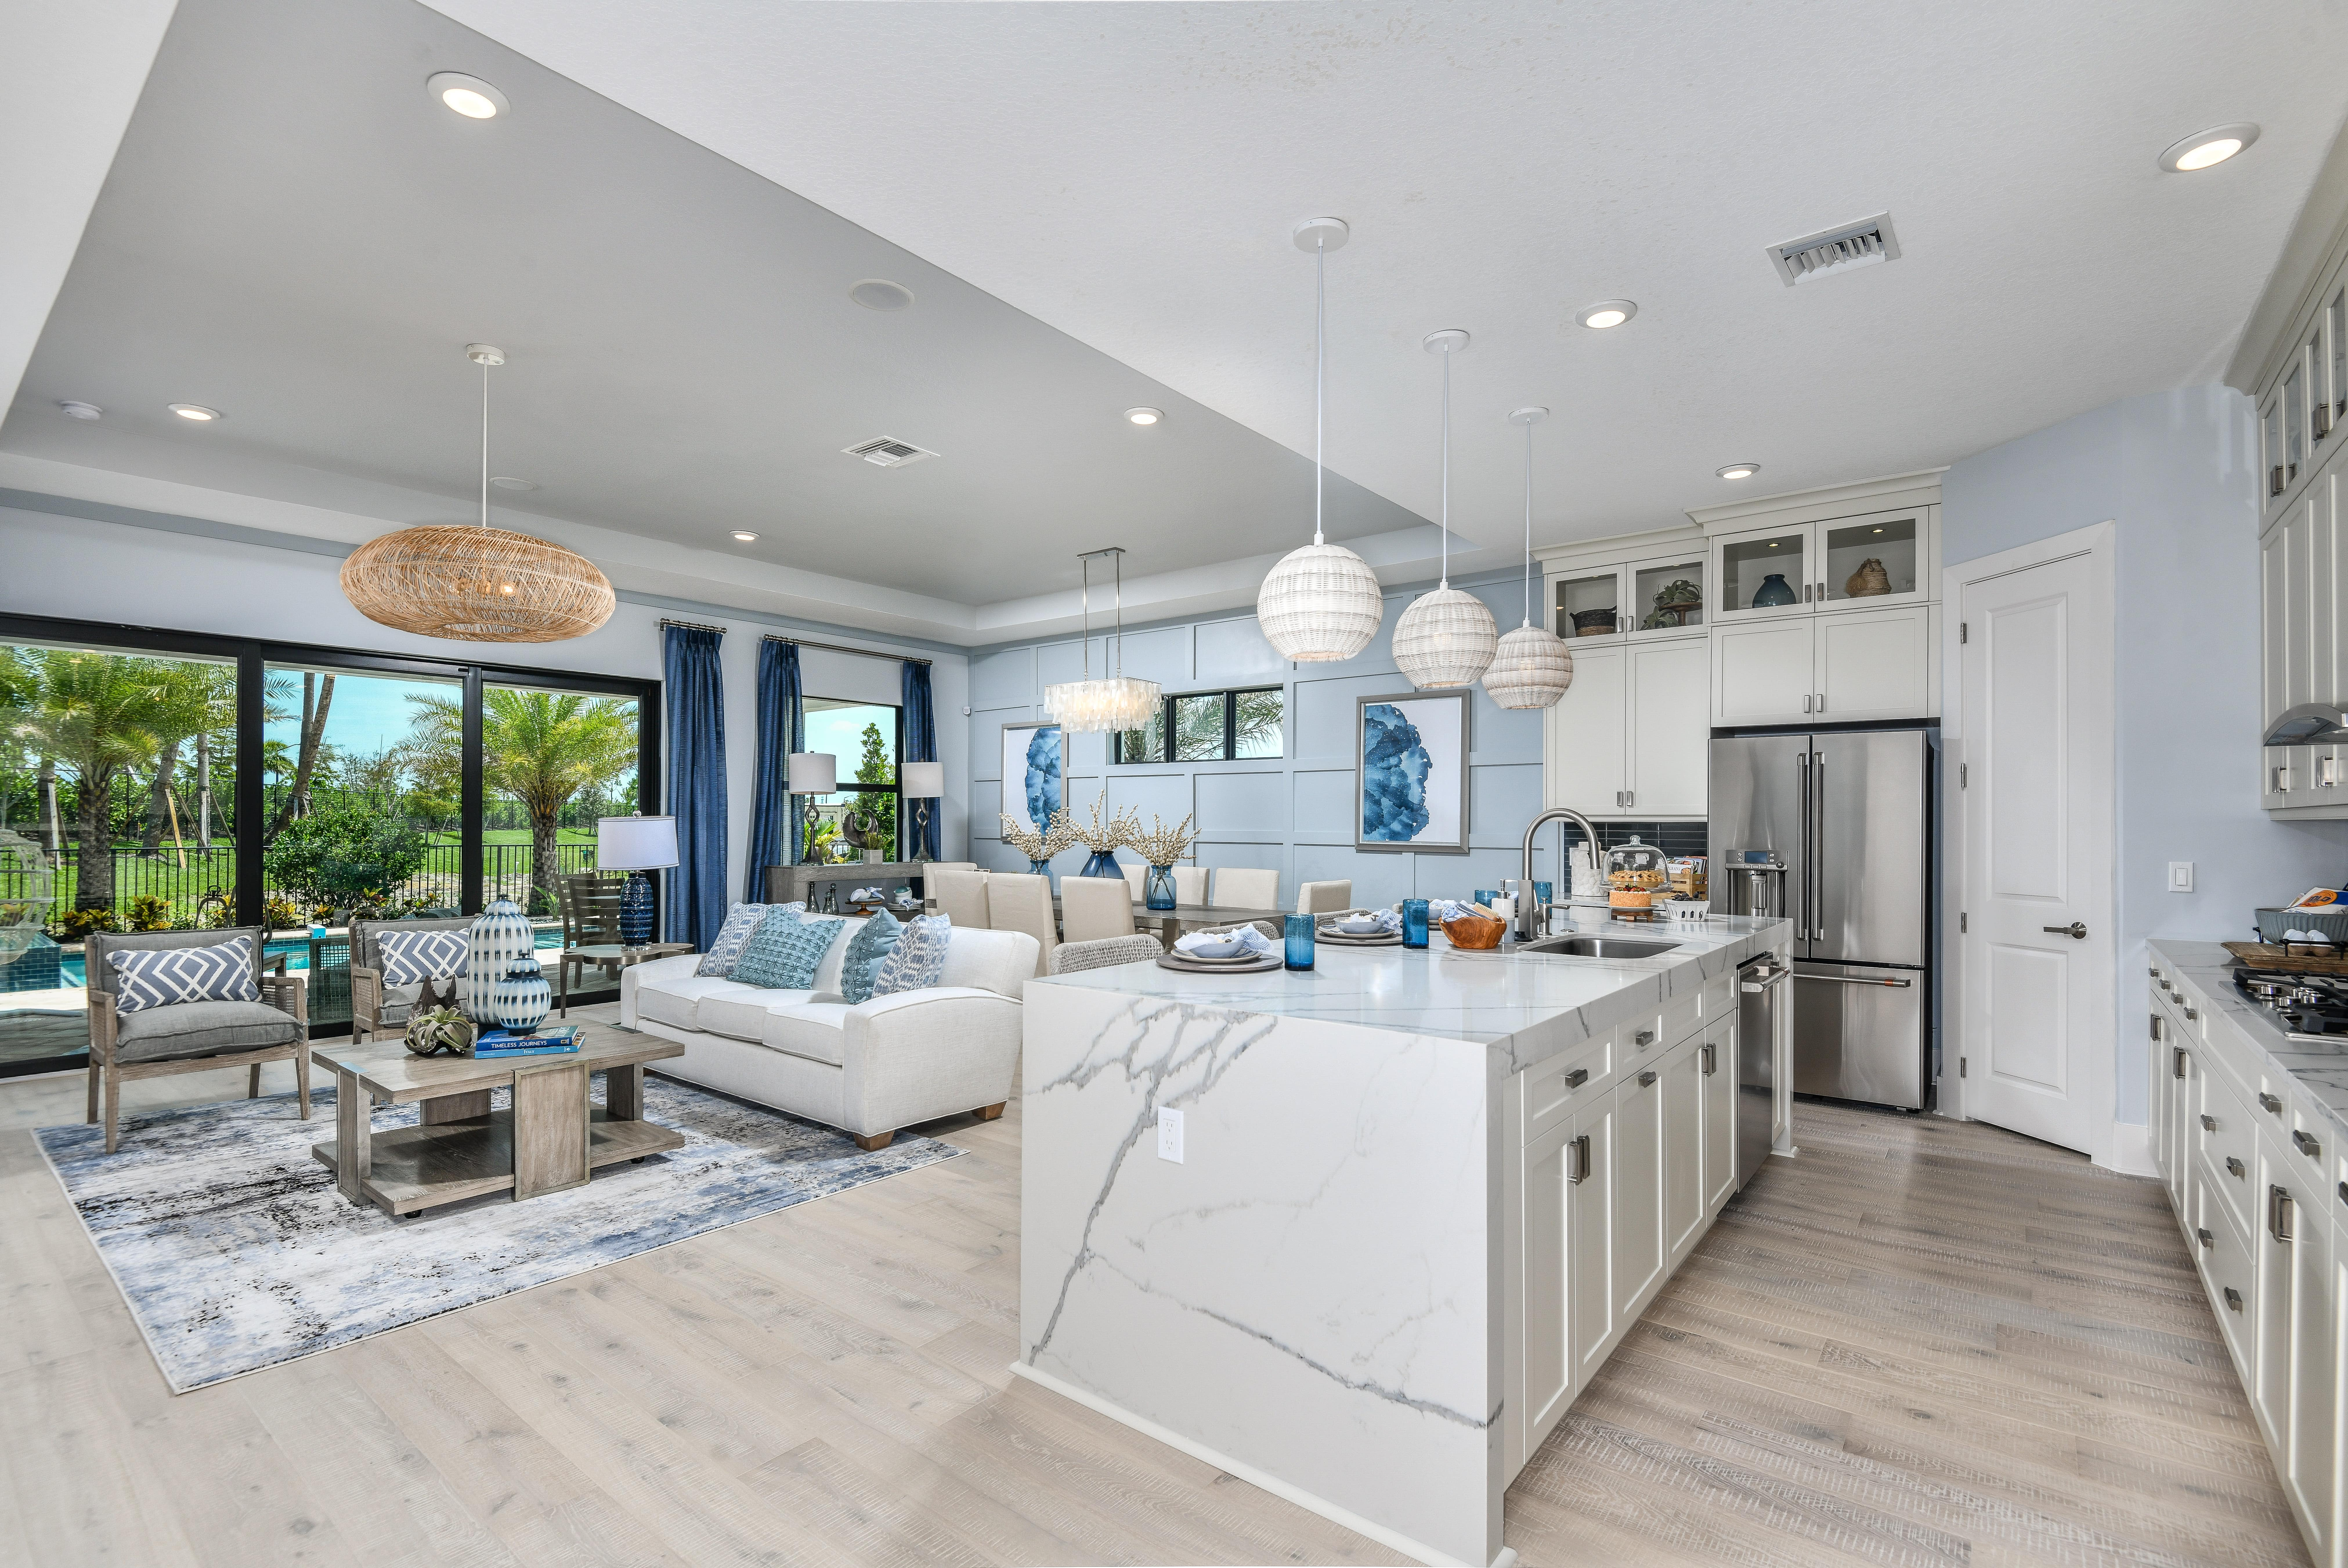 Palm Beach home interior with light colors